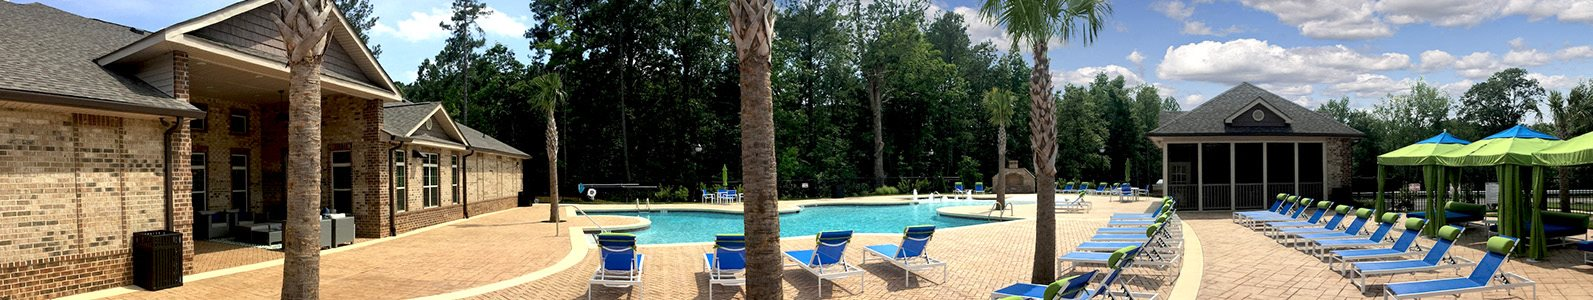 Sparkling Pool at Bacarra Apartments, Raleigh, NC, 27606